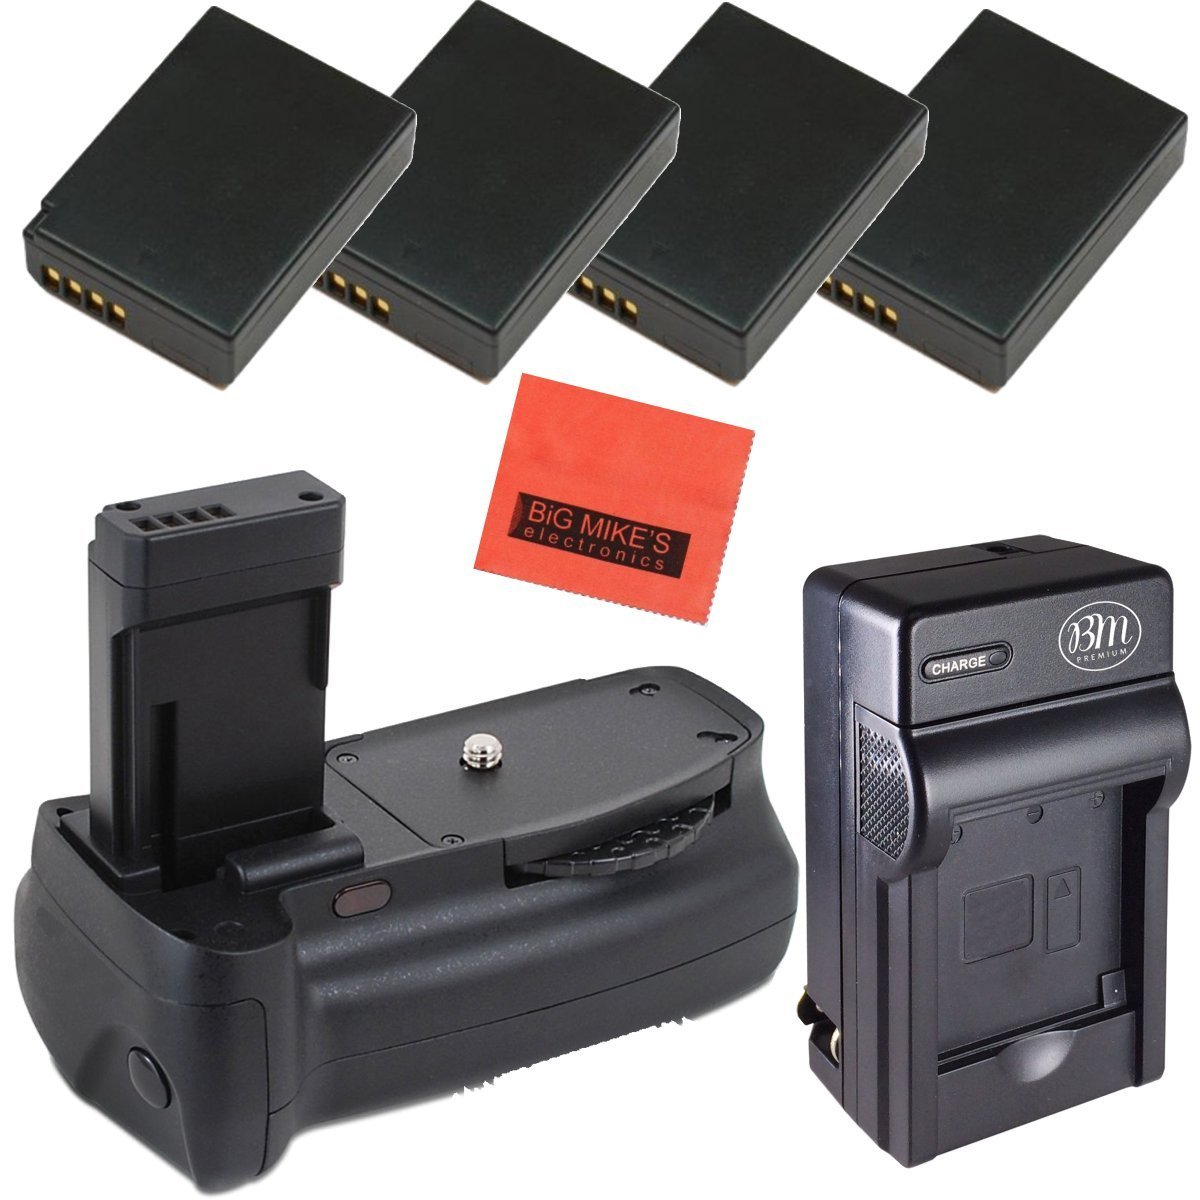 Battery Grip Kit for Canon EOS Rebel T3, T5, T6, Kiss X50, Kiss X70, EOS 1100D, EOS 1200D, EOS 1300D Digital SLR Camera Includes Qty 4 Replacement LP-E10 Batteries + Battery Charger + Vertical Battery Grip + More!!